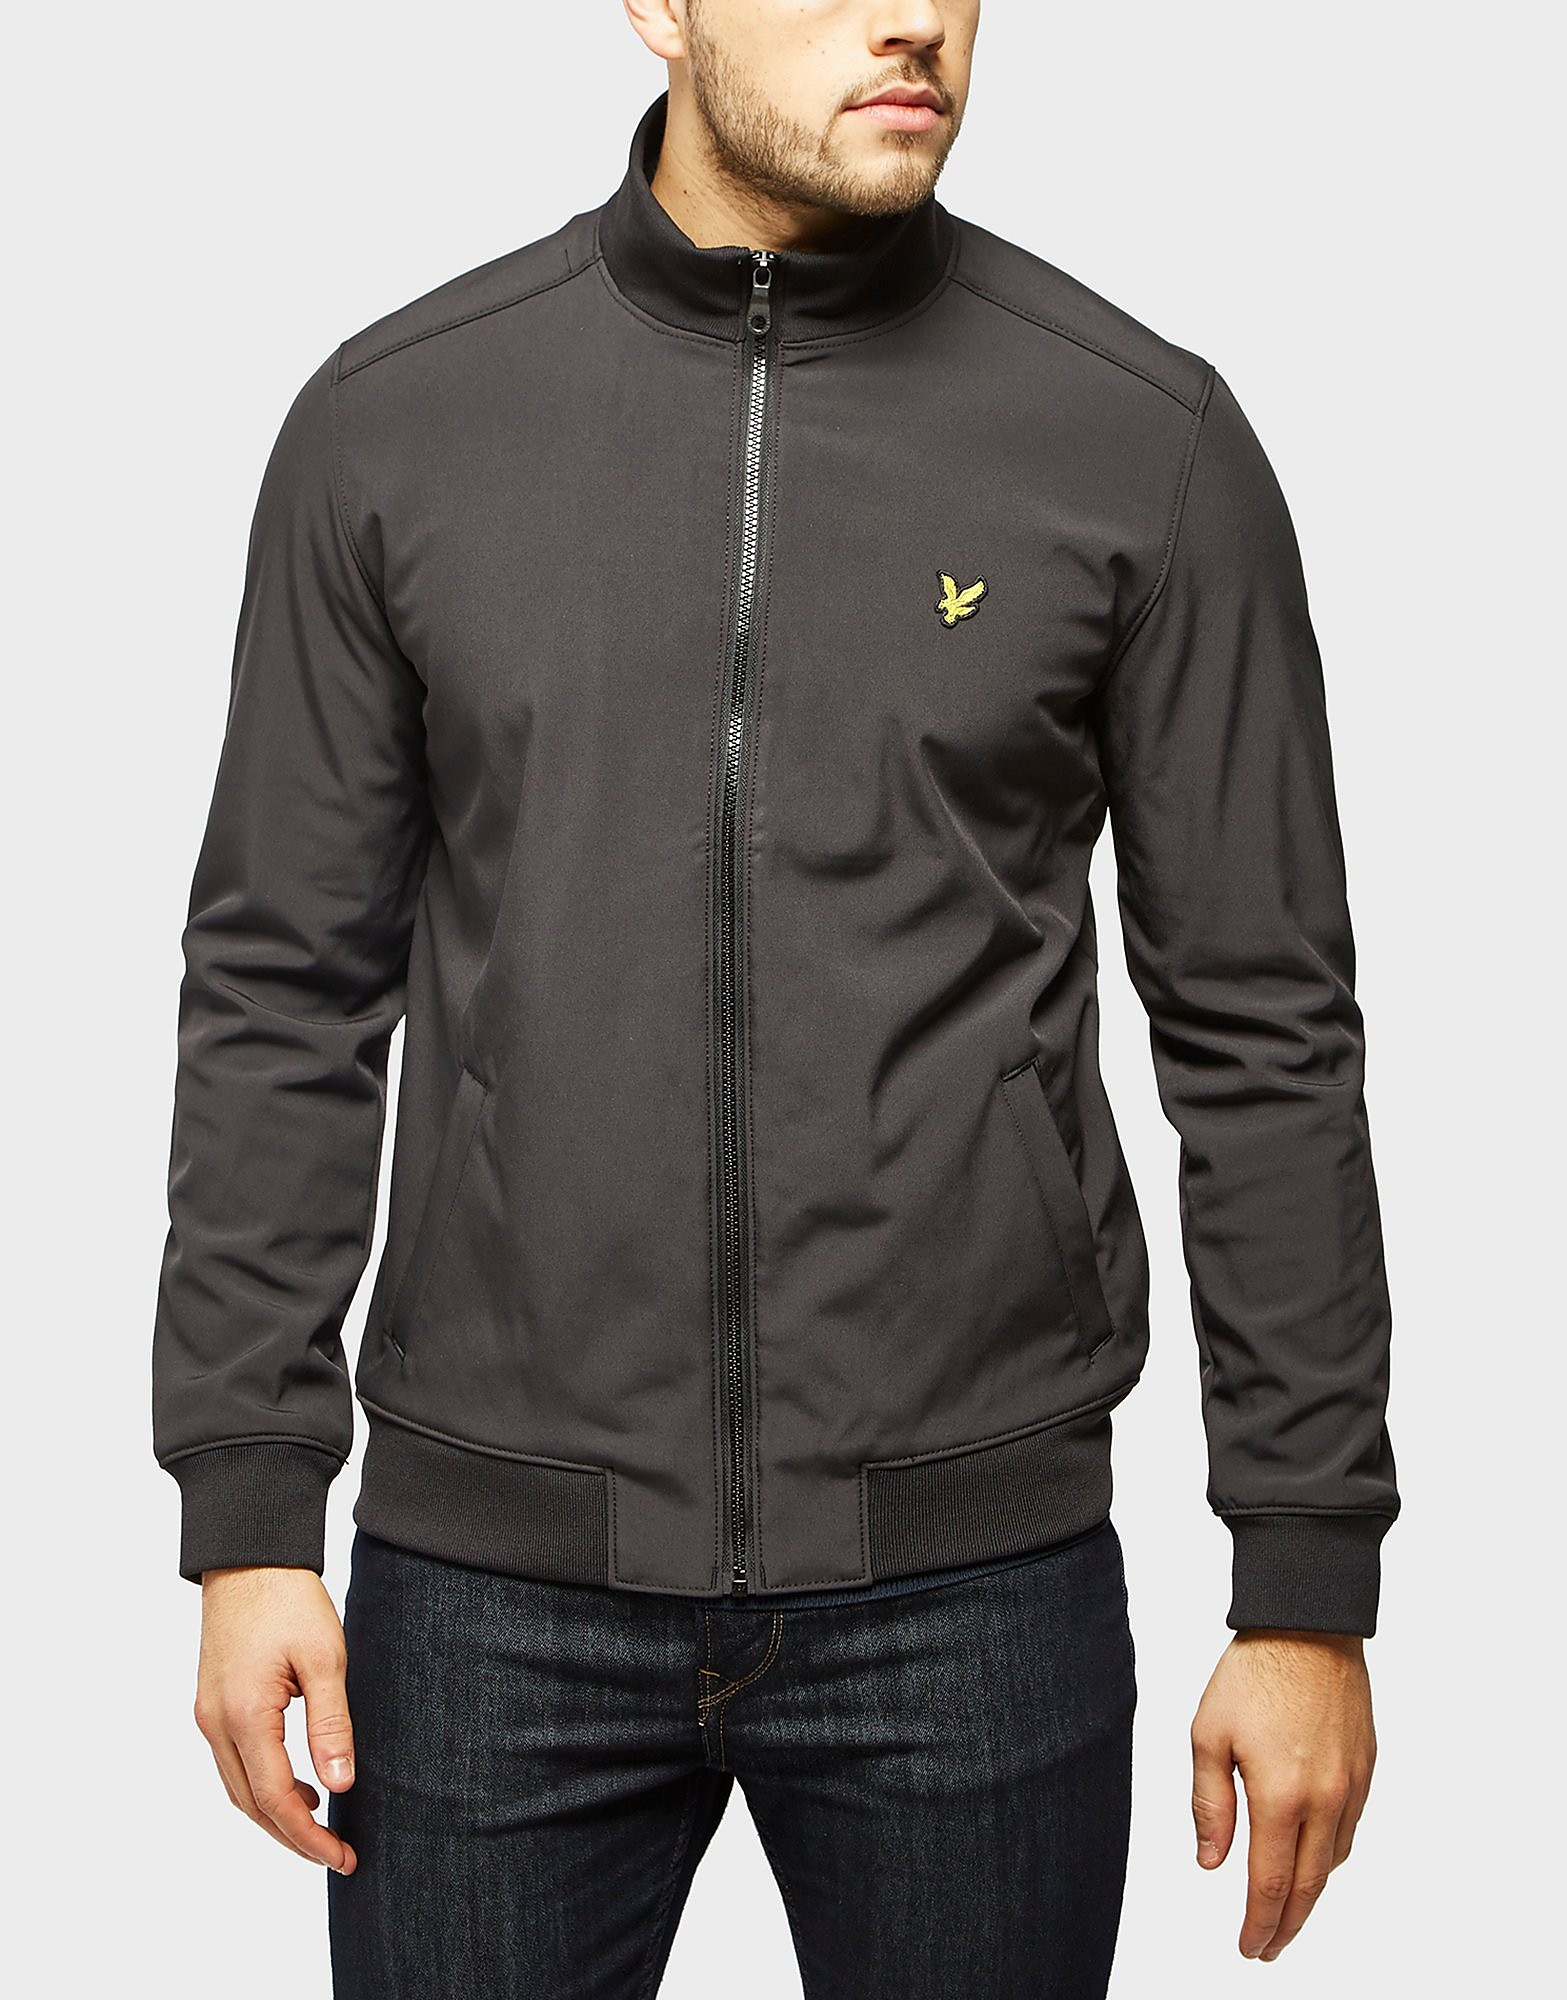 Lyle & Scott Soft Shell Lightweight Jacket